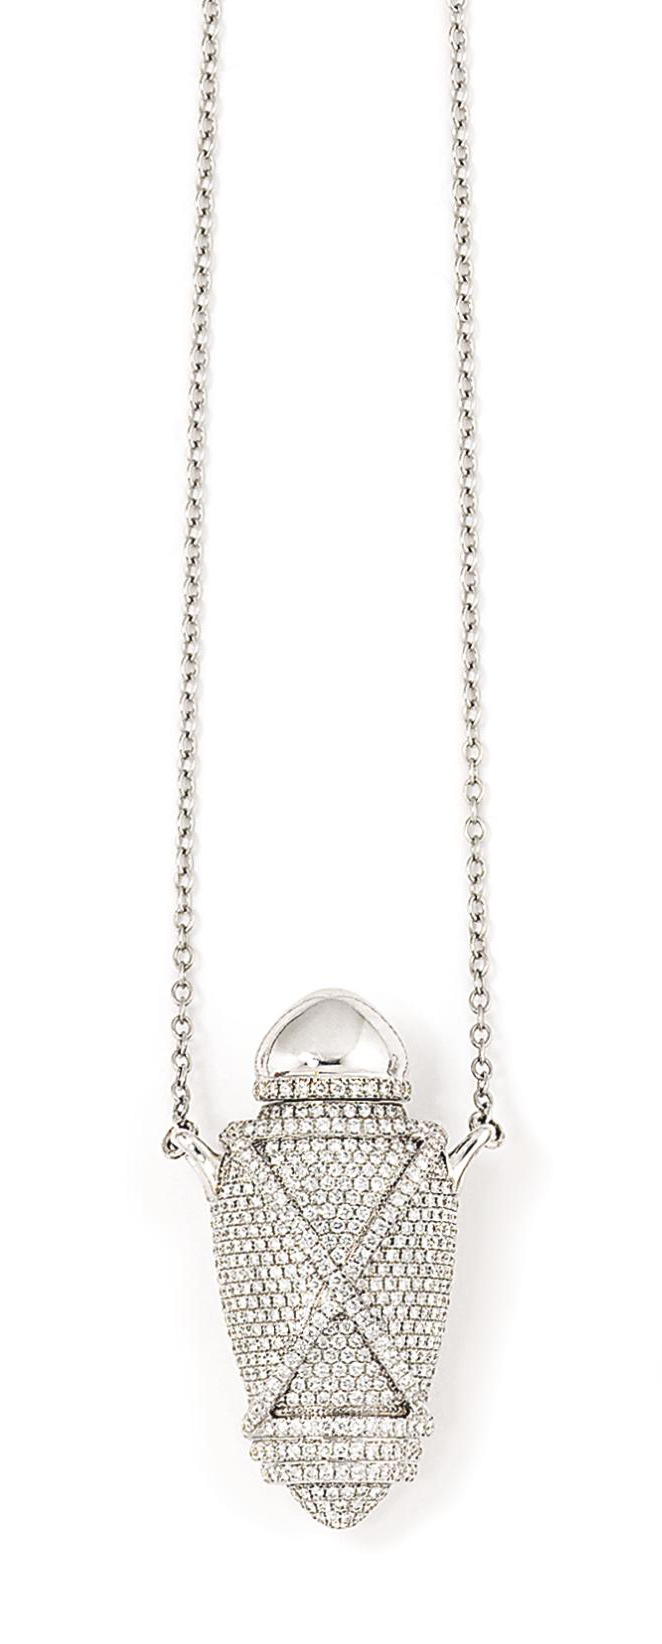 3831df09954fc6 An 18ct white gold diamond-set 'Ampoule' pendant, by Theo Fennell ...